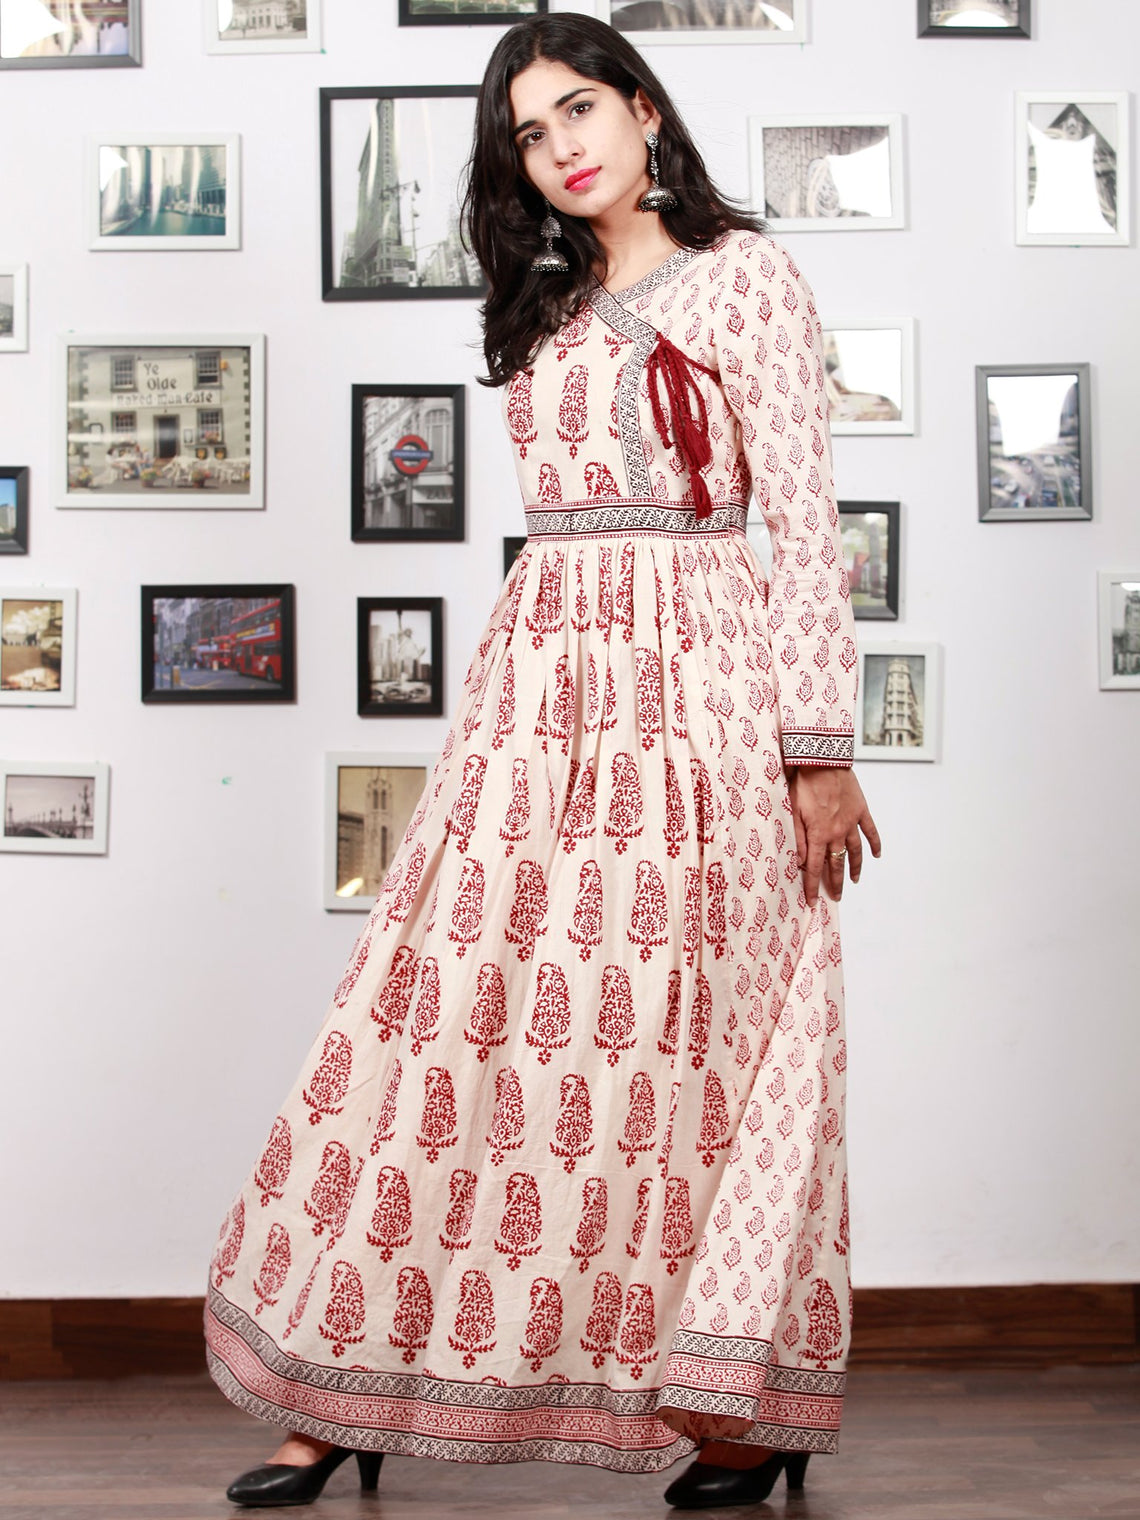 White Red Black Bagh Printed Cotton Long Angrakha Dress With Gathers - D298F1719